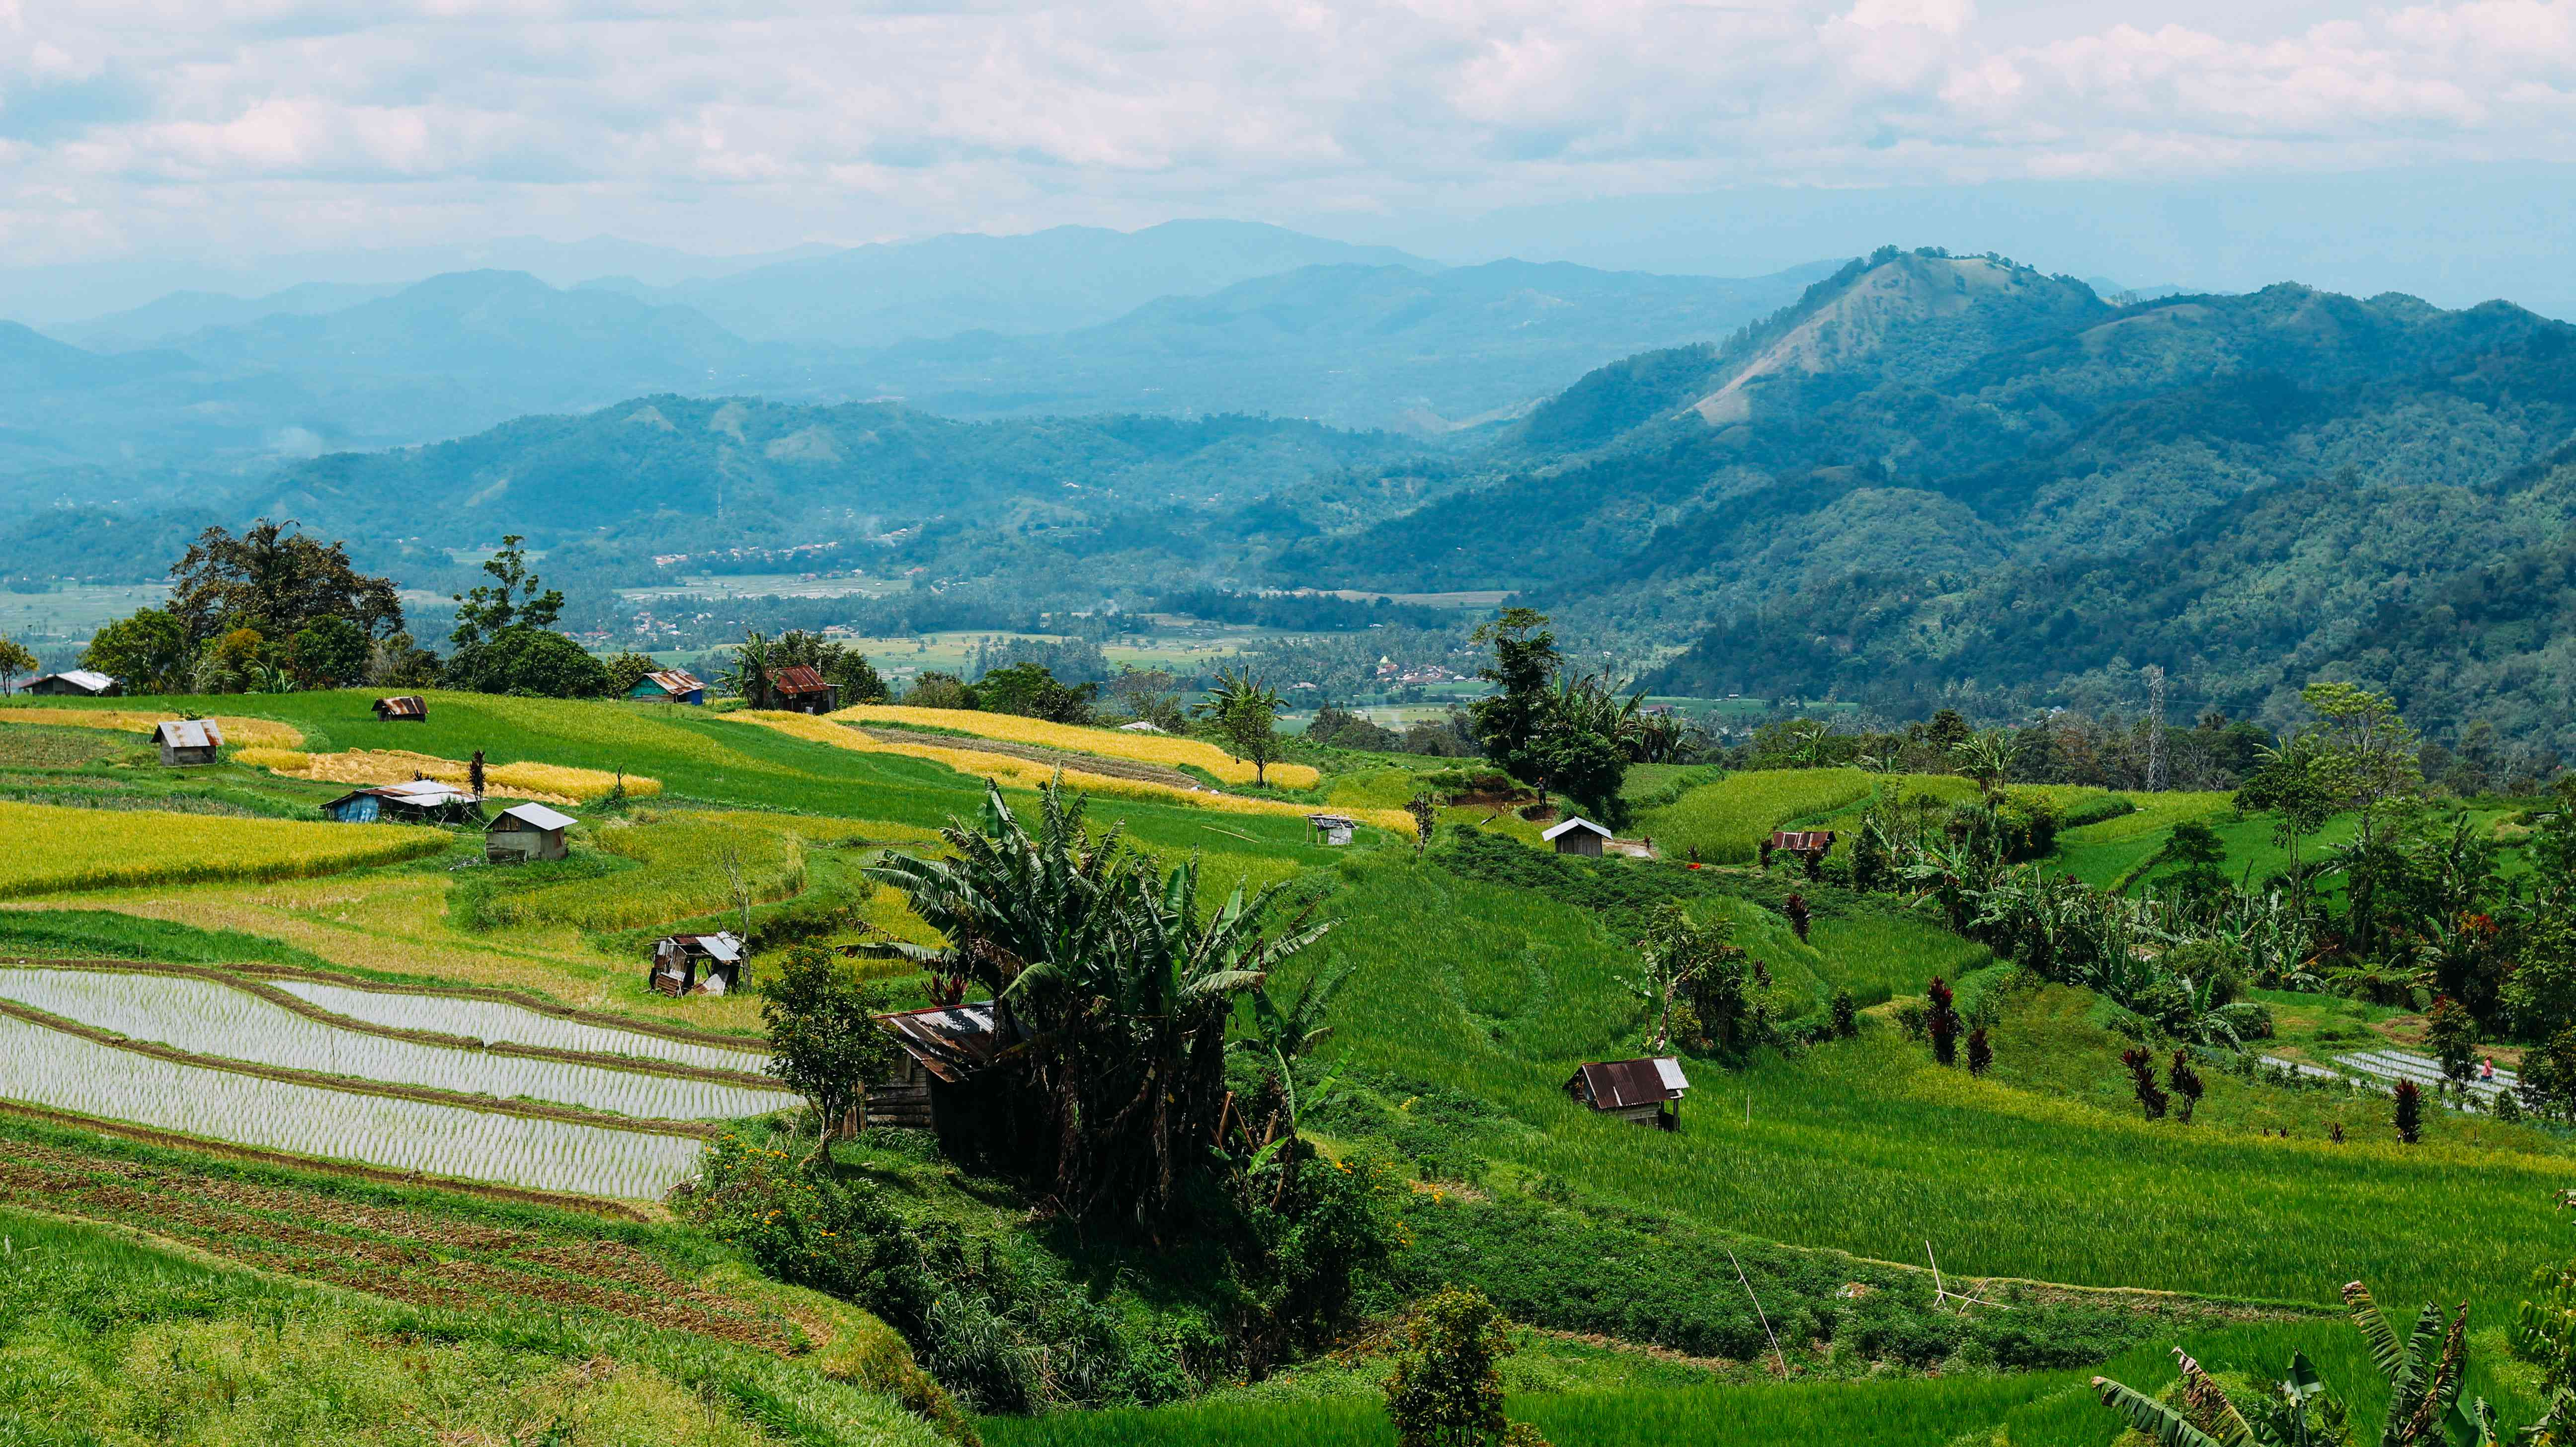 Green fields and hills in Sumatra